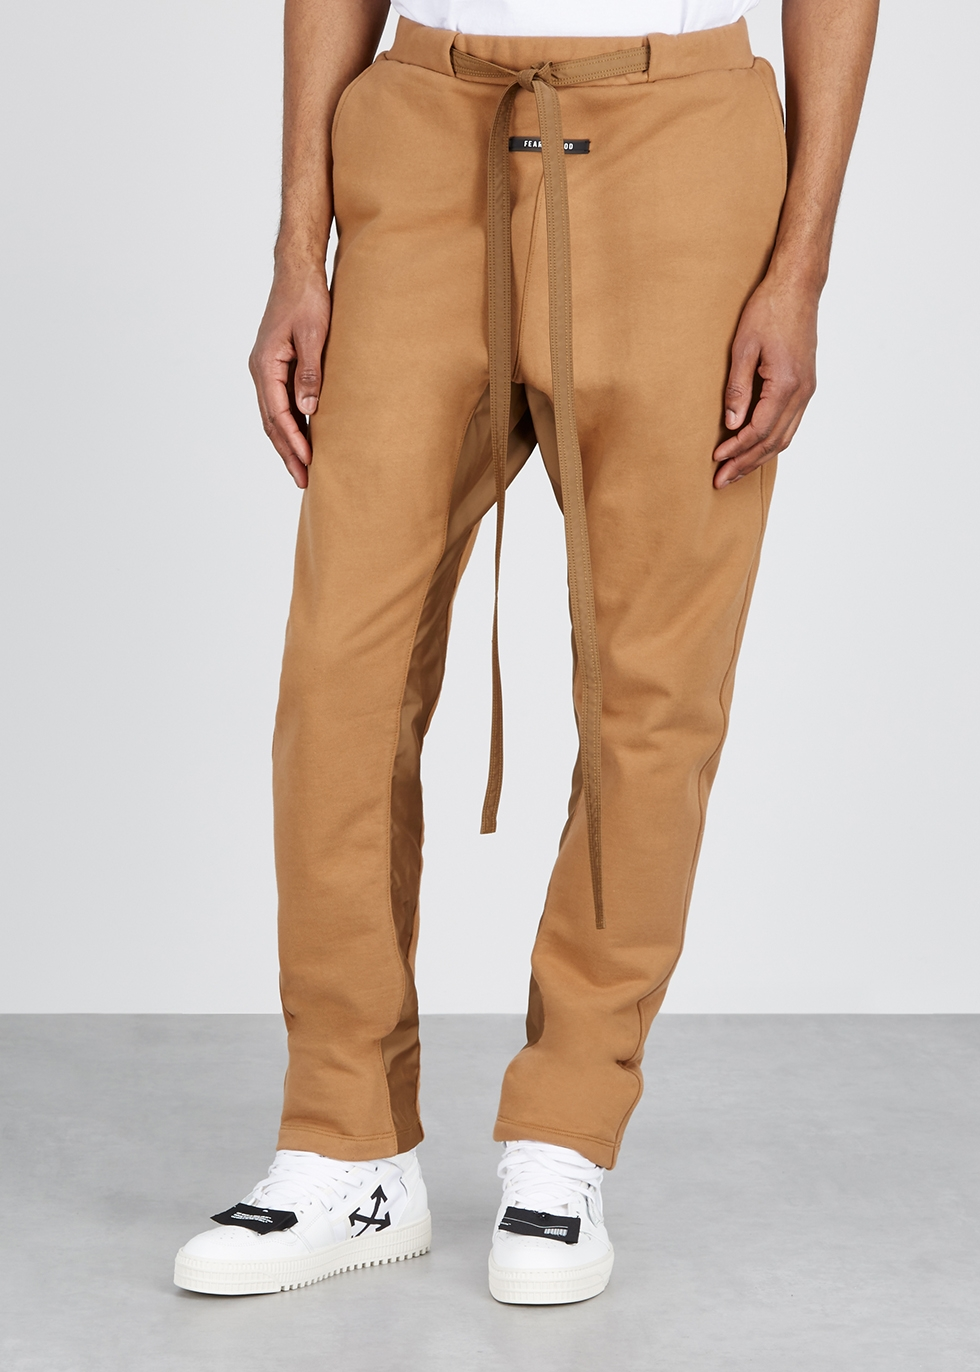 Camel jersey sweatpants - Fear of God